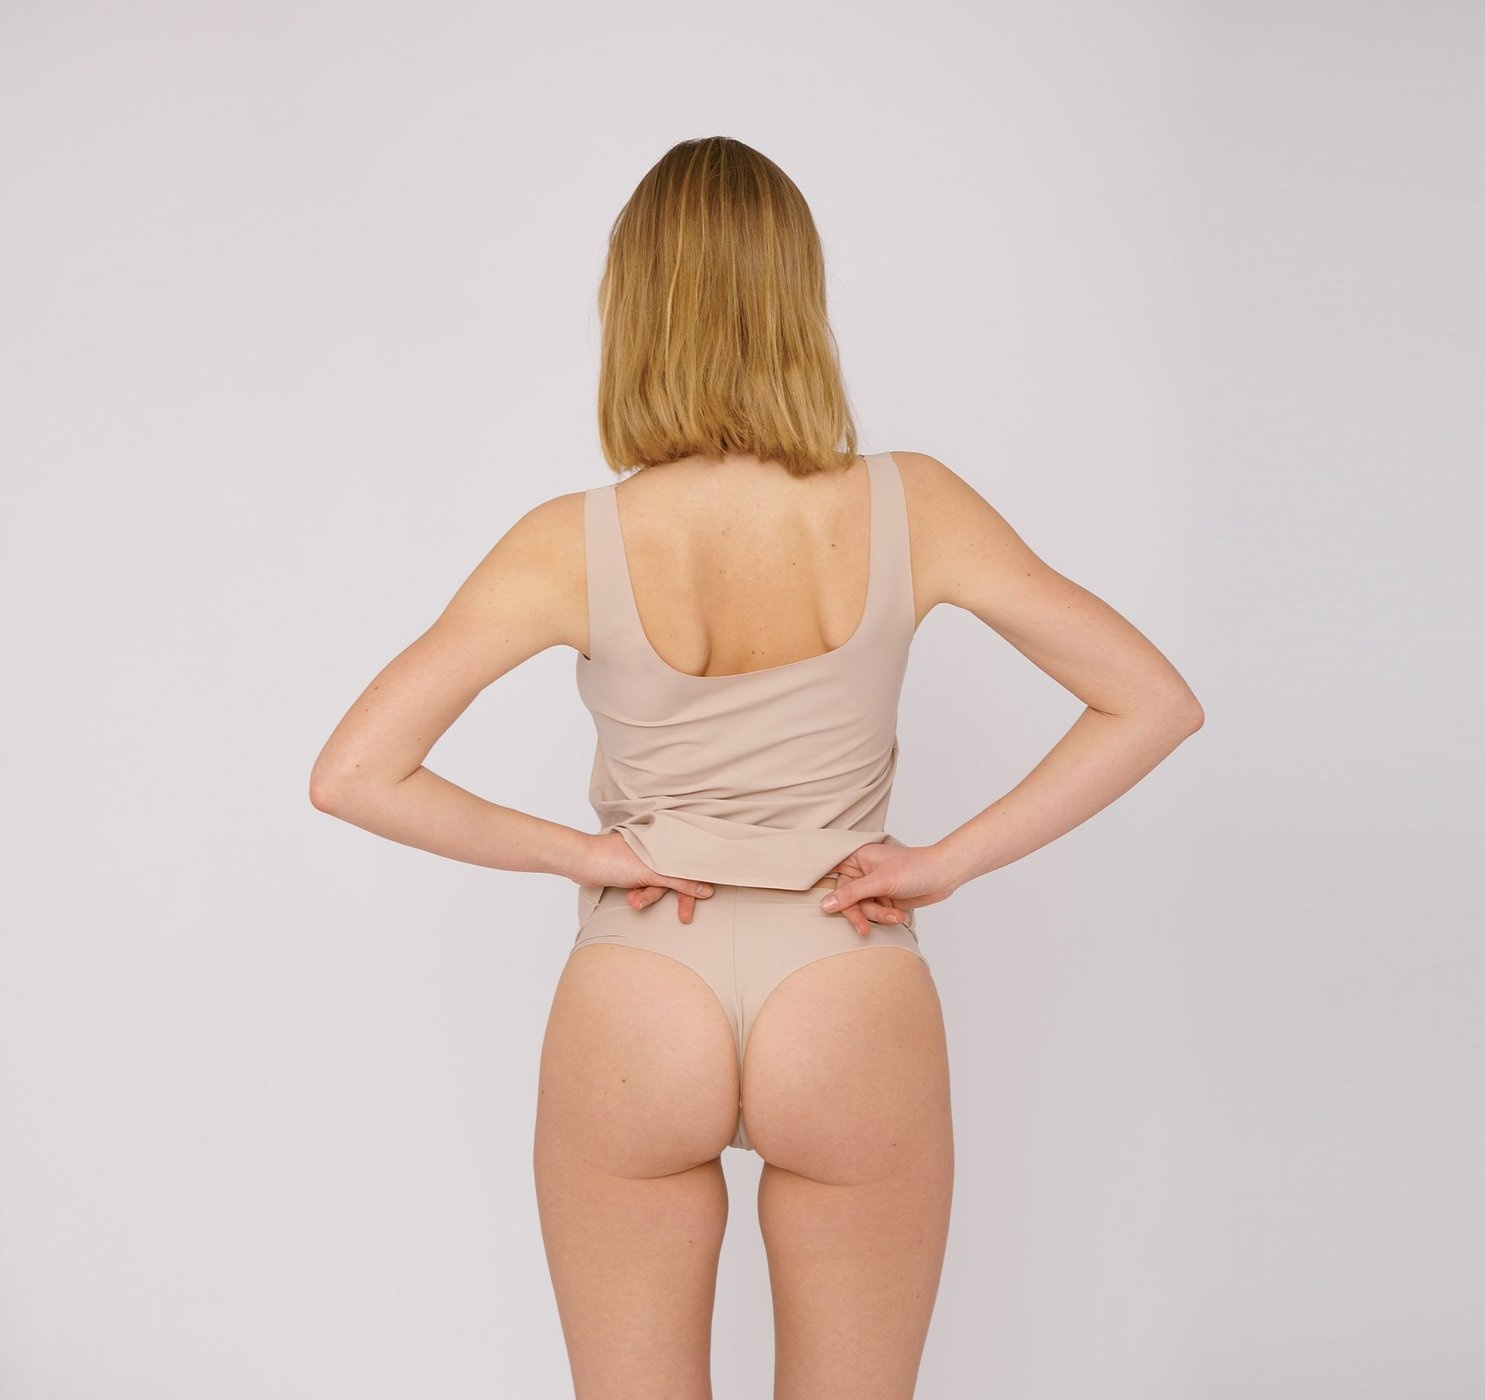 Organic Basics | Invisible Cheeky Thong 2-pack Rose Nude-2